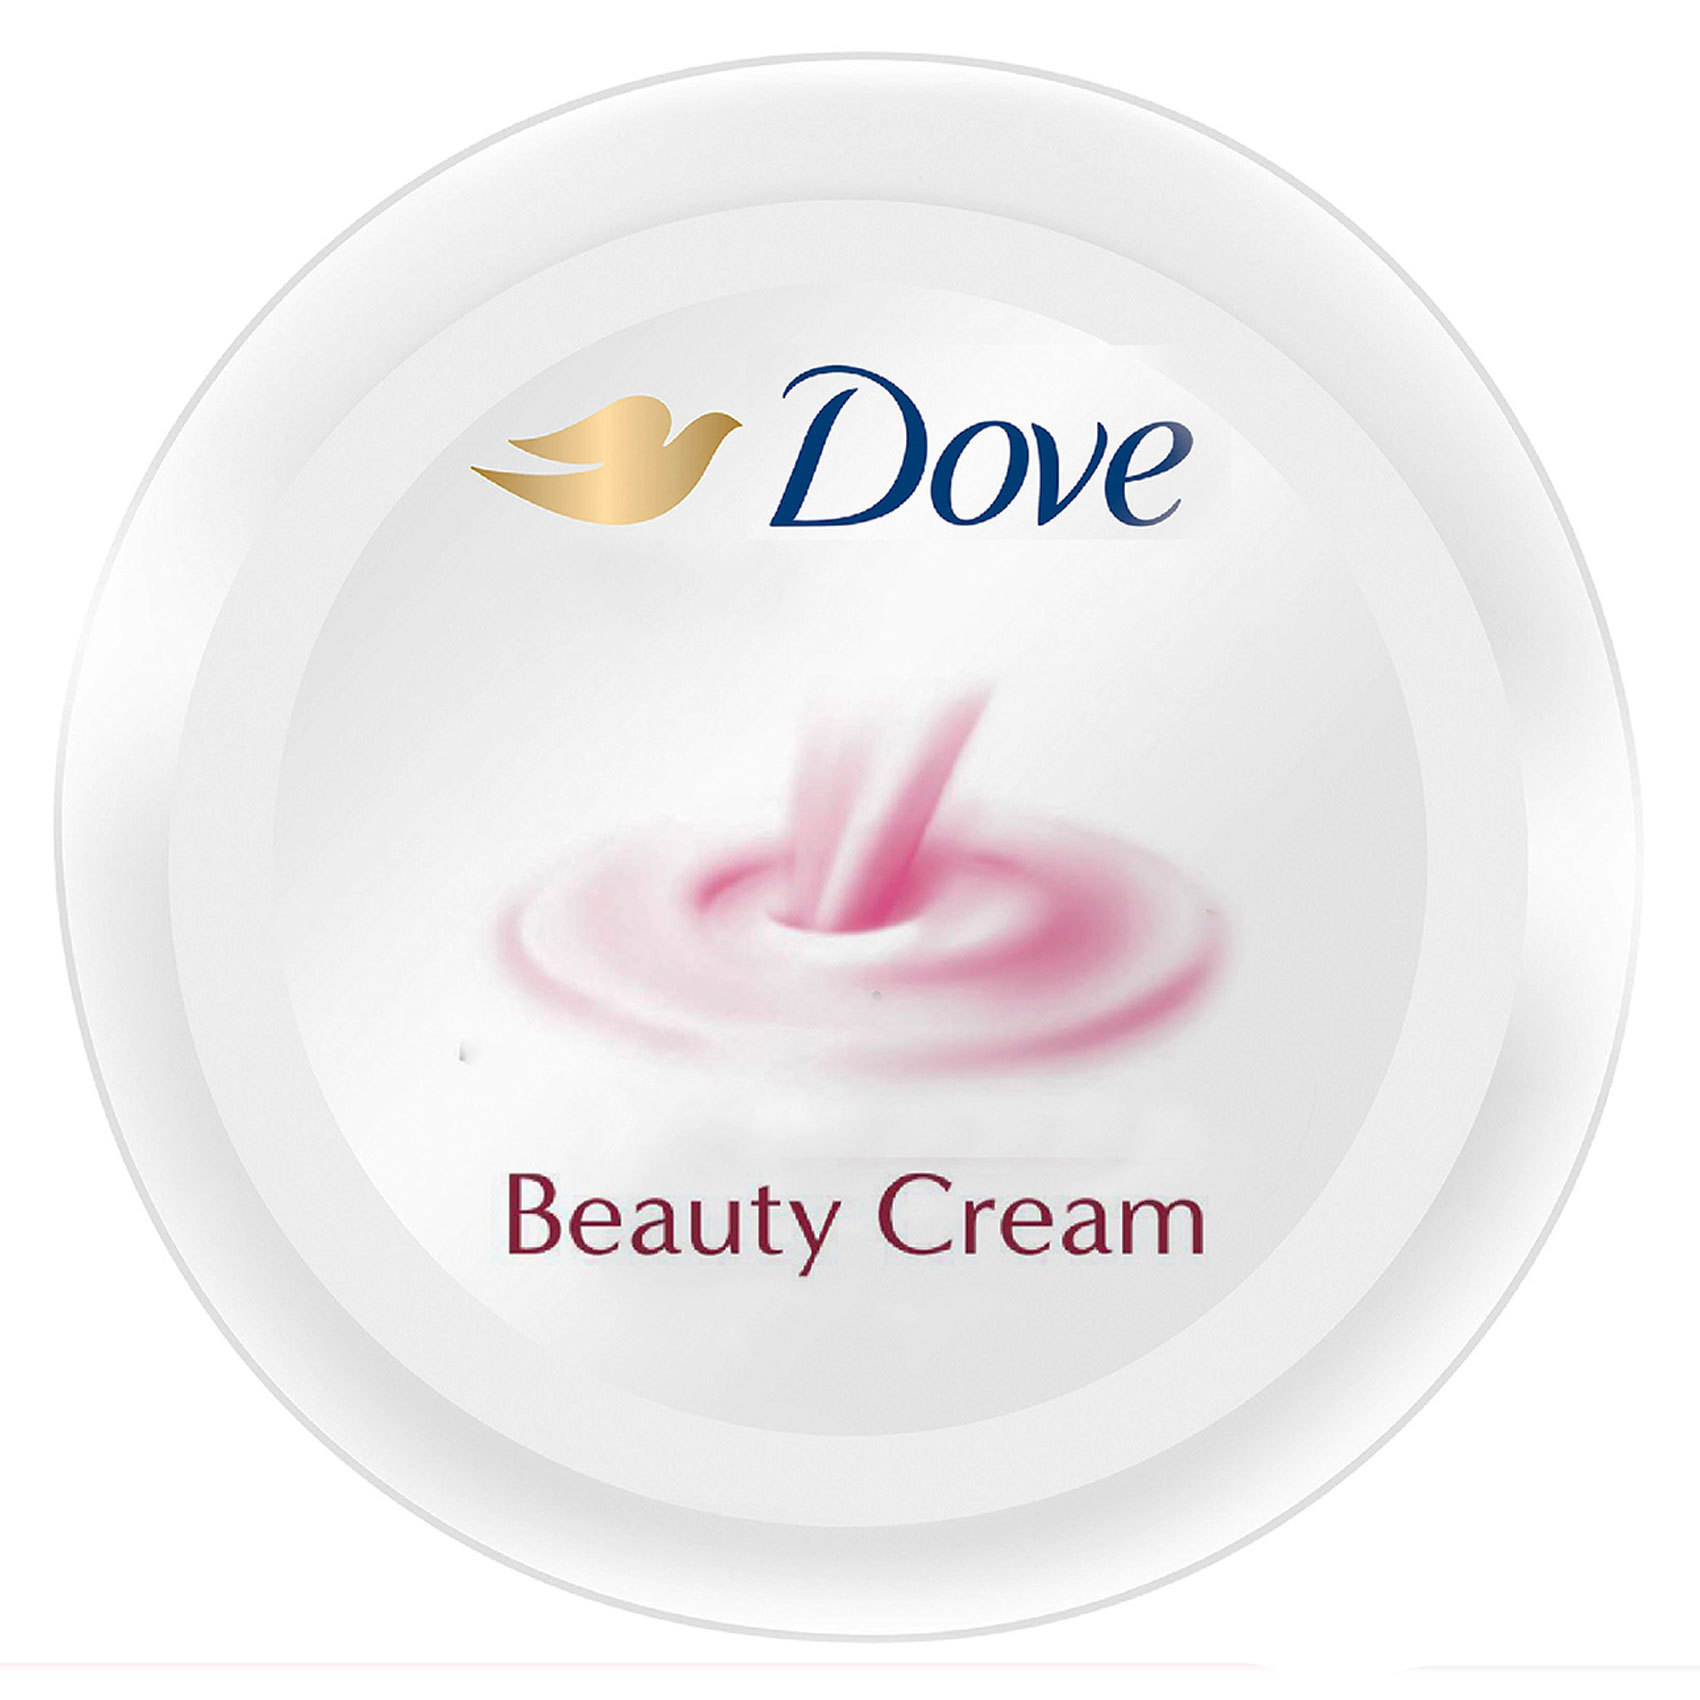 DOVE BTY CRM 150ML